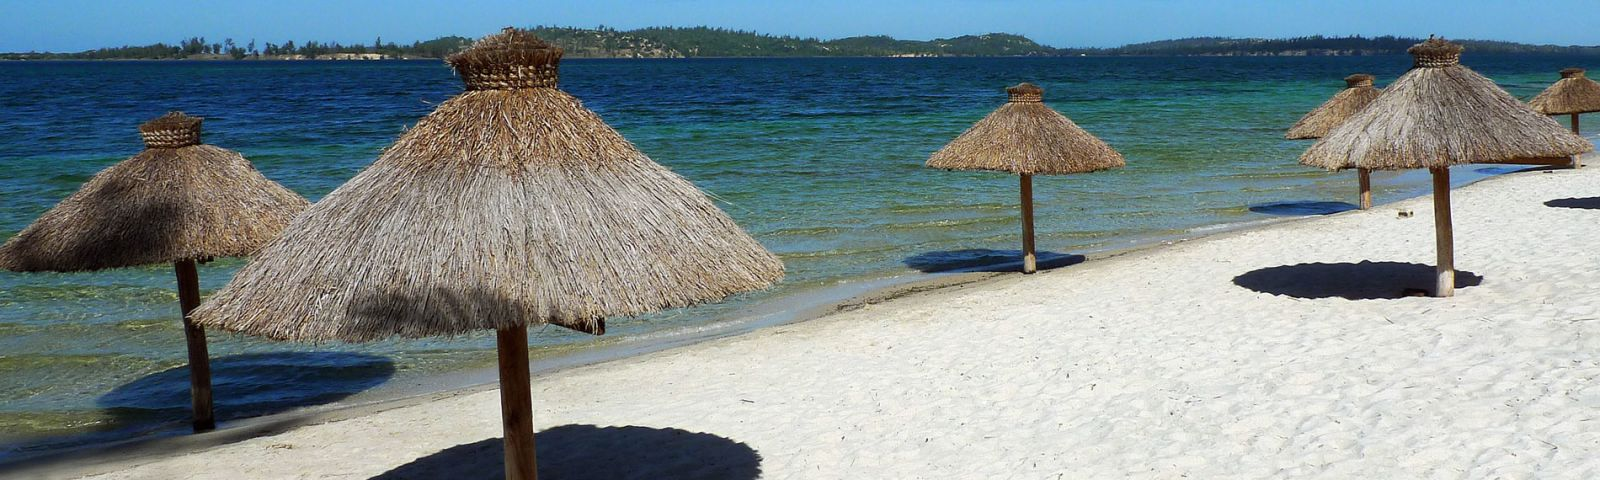 Highlights of Mozambique - Things to do in Mozambique